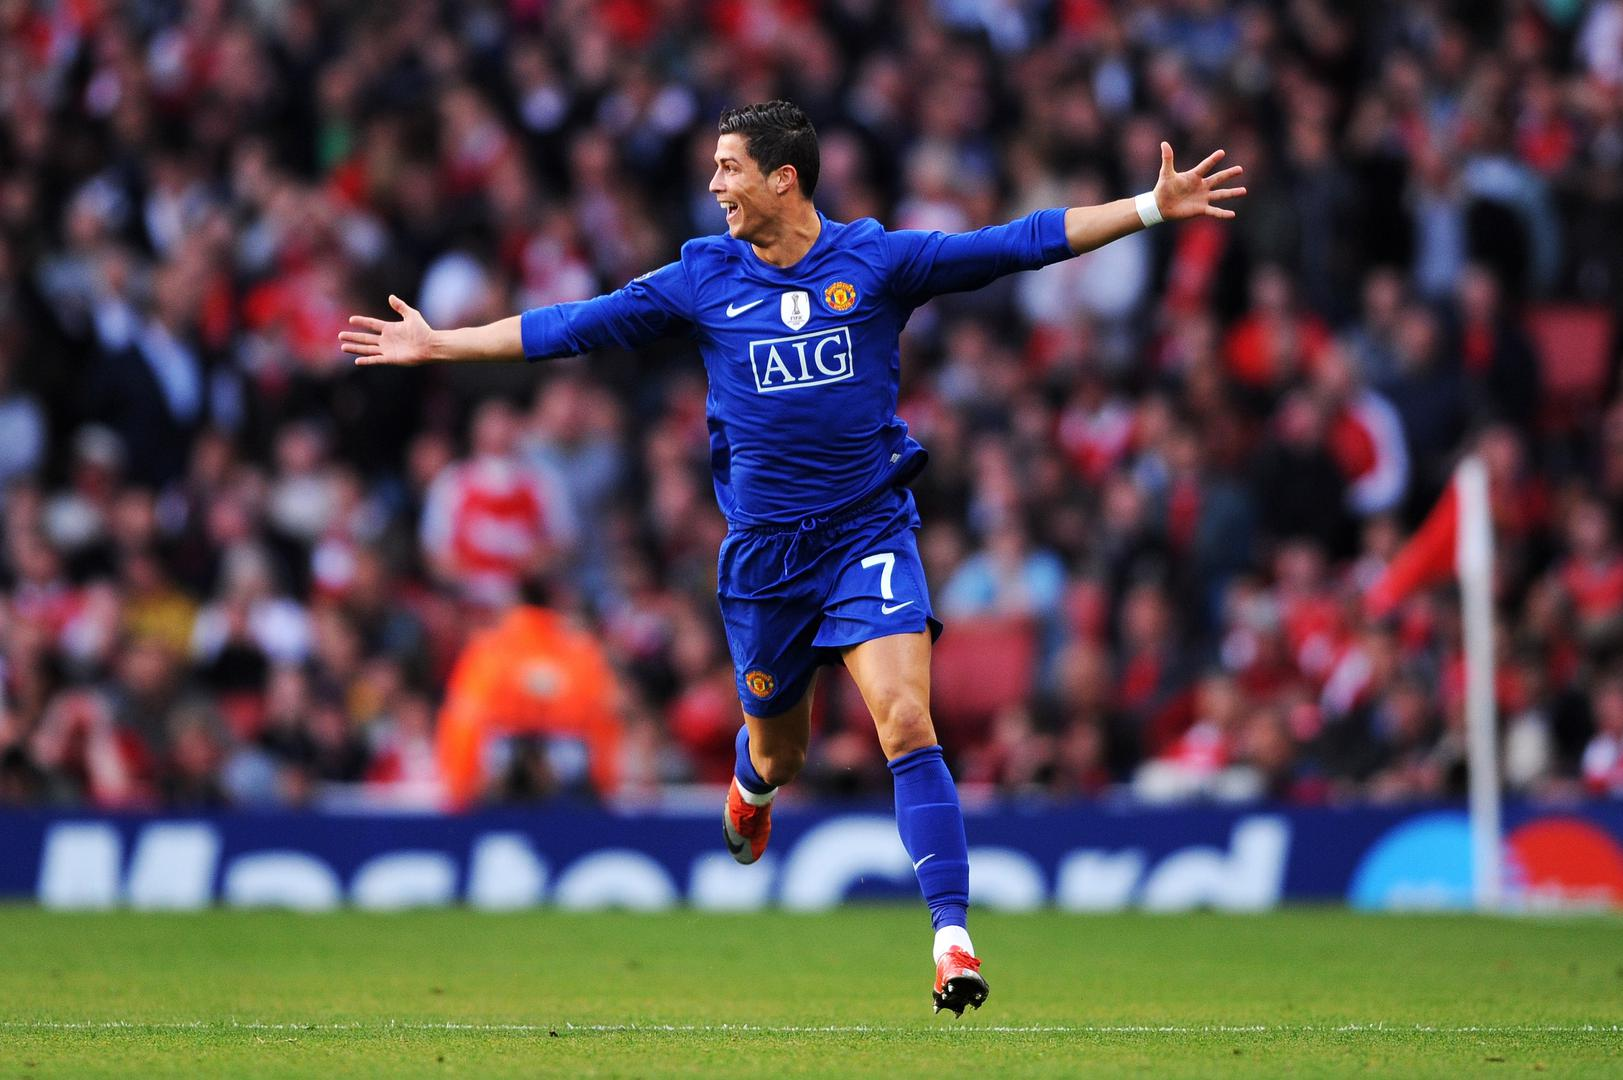 Cristiano Ronaldo celebrates against Arsenal.